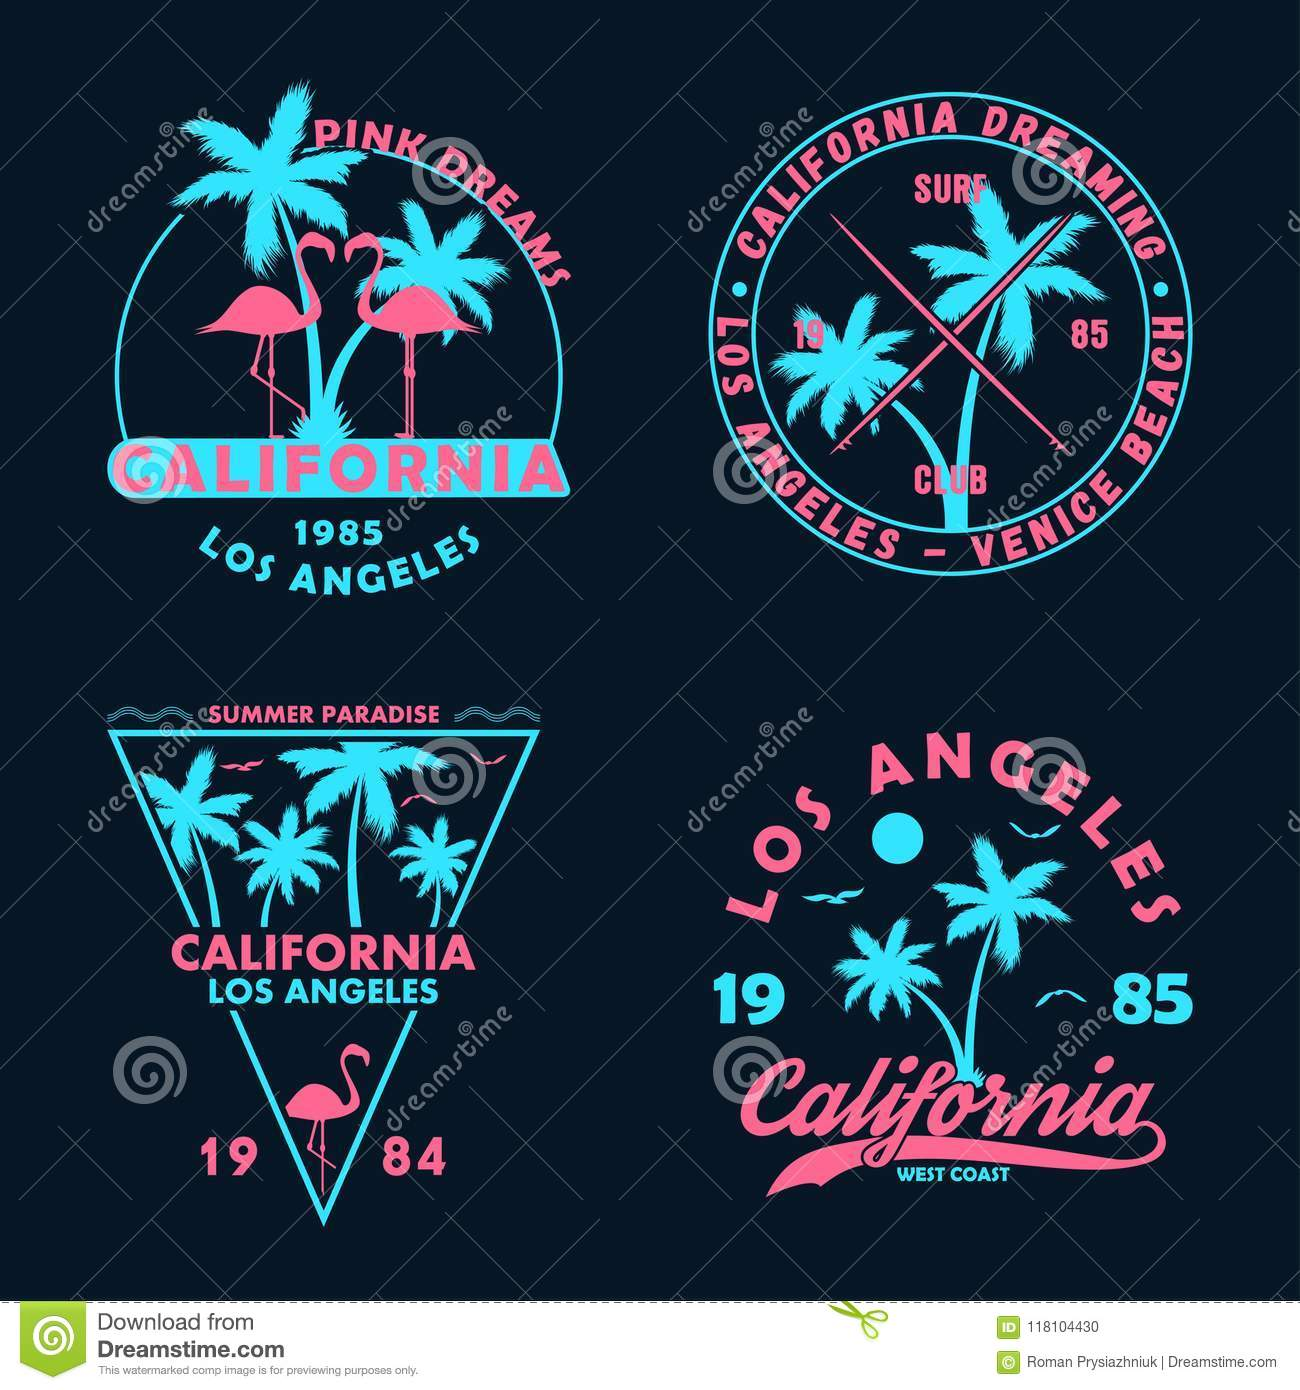 Vintage t-shirt design. Badges and emblems set with California prints. Graphics collection for apparel, labels and patches.